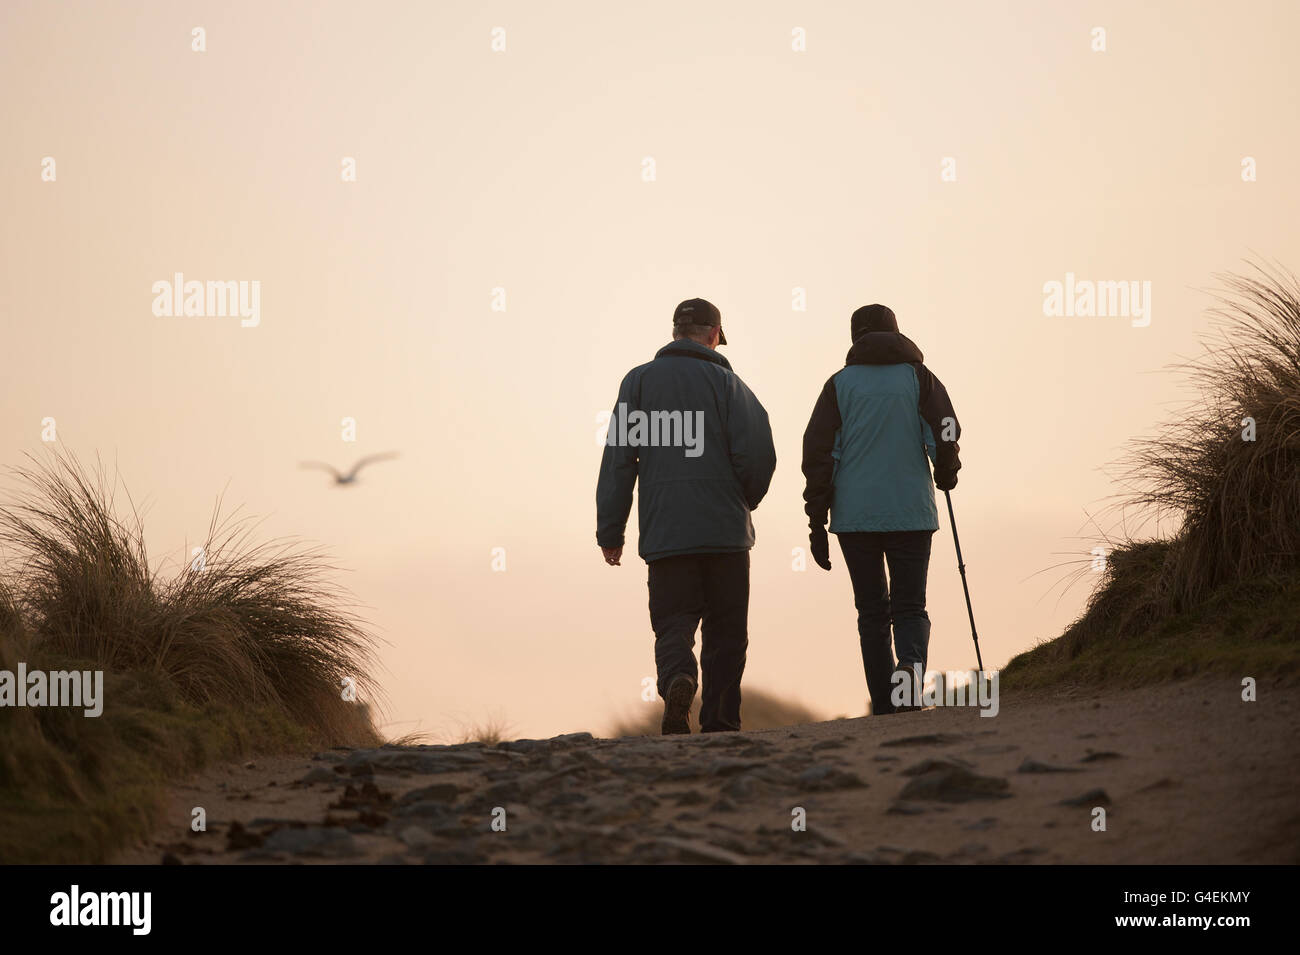 Couple Walking homeward on the coast path through the dunes at dusk with a seagull flying out of focus in the distance - Stock Image